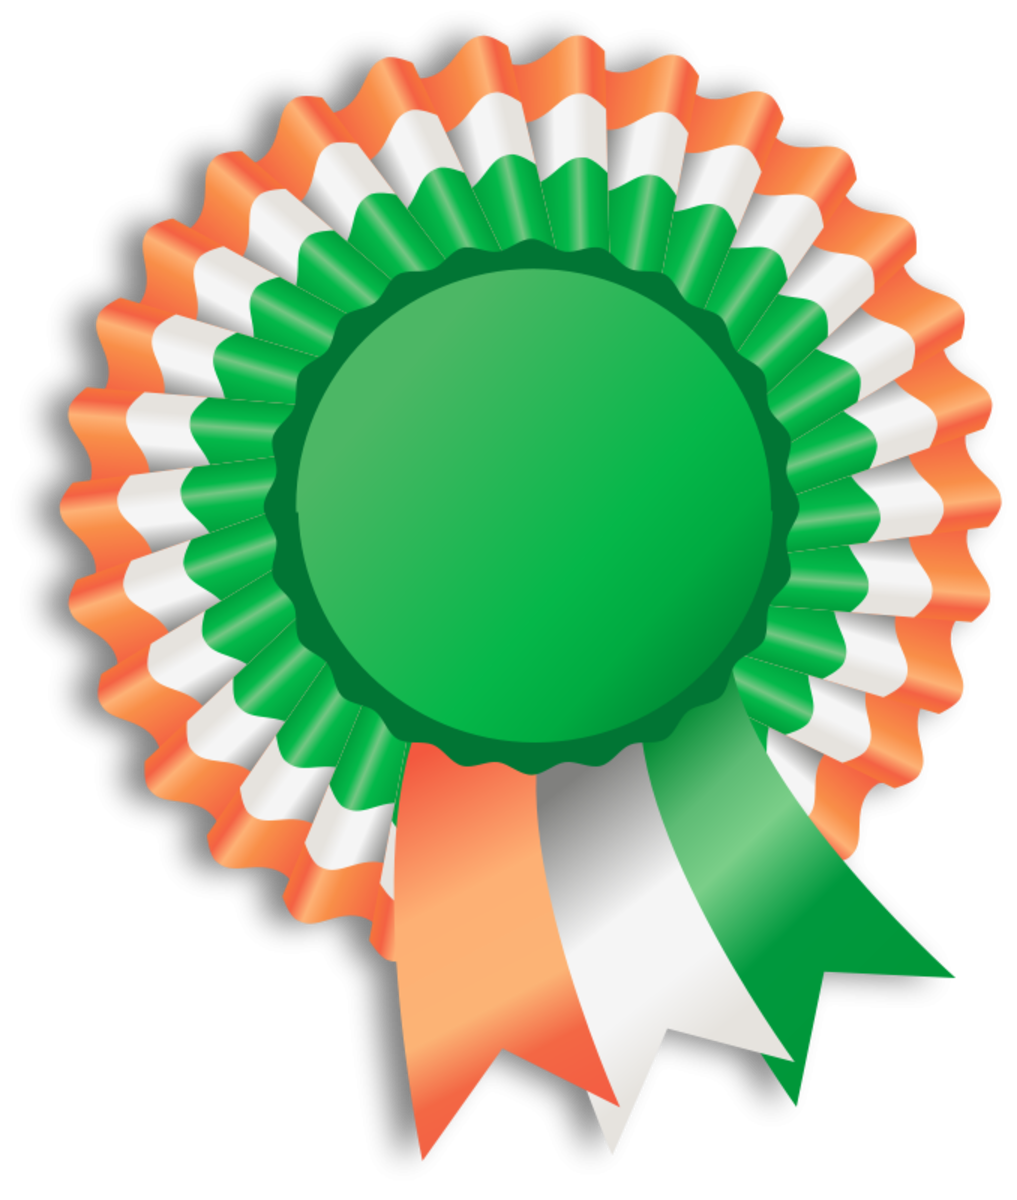 Badge with Colors of Ireland